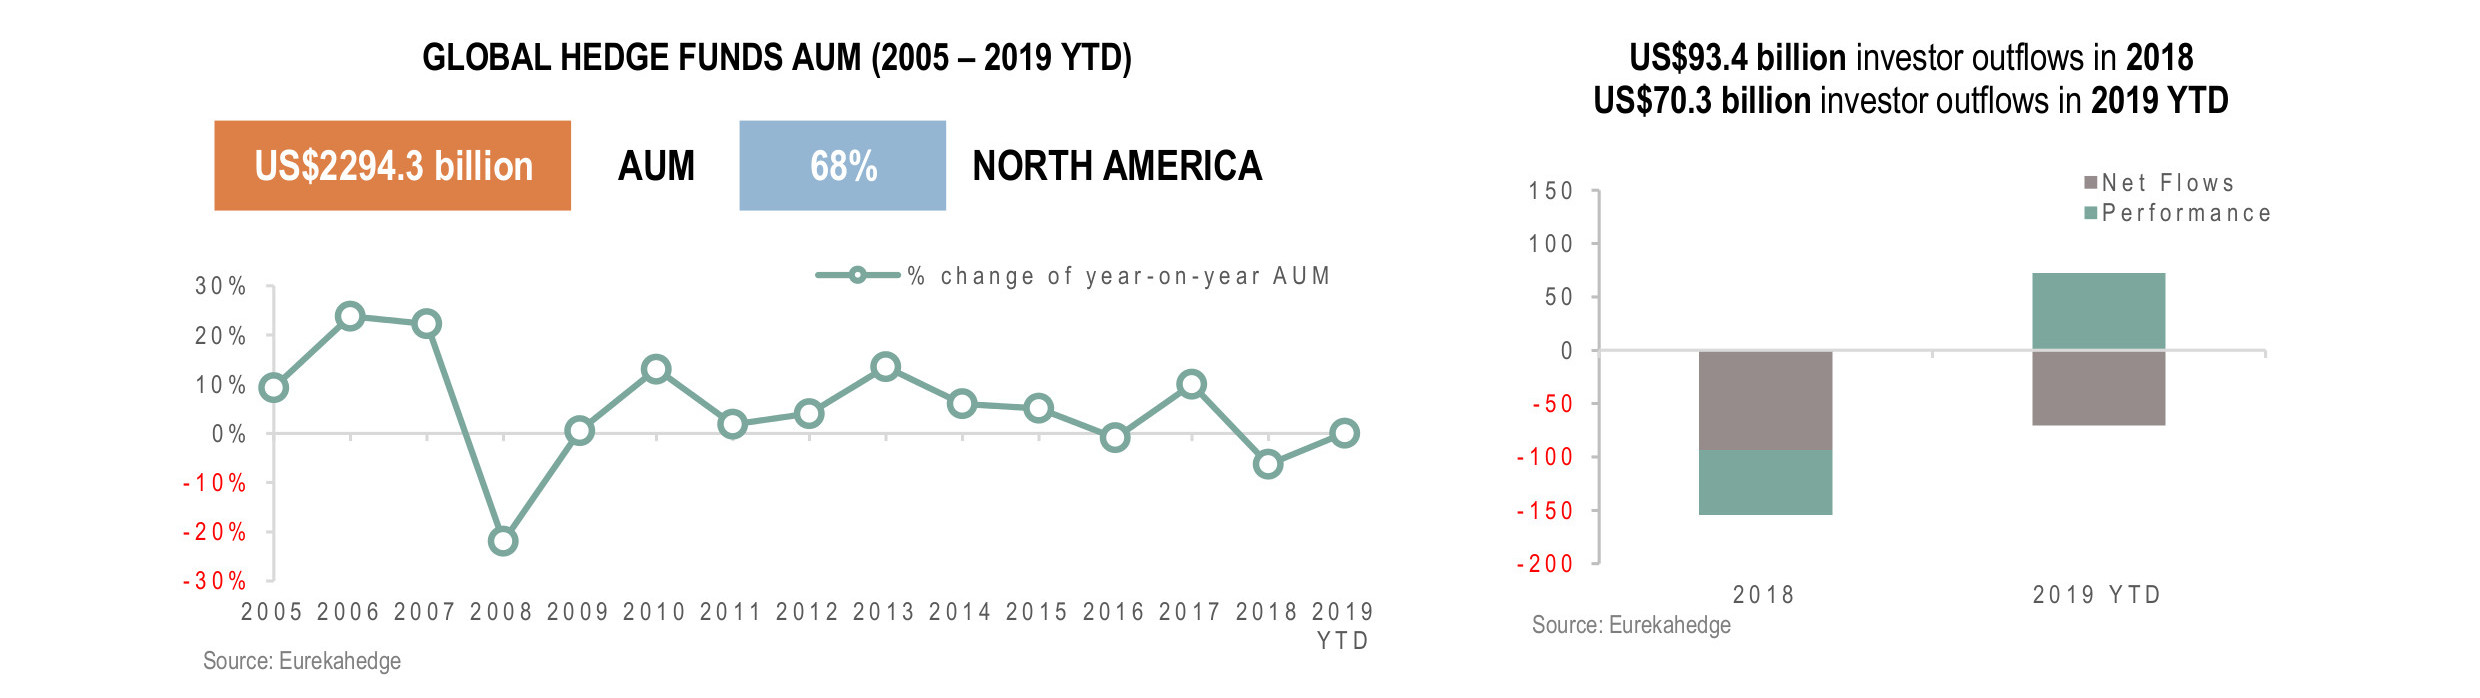 Global Hedge Funds Infographic August 2019 - AUM